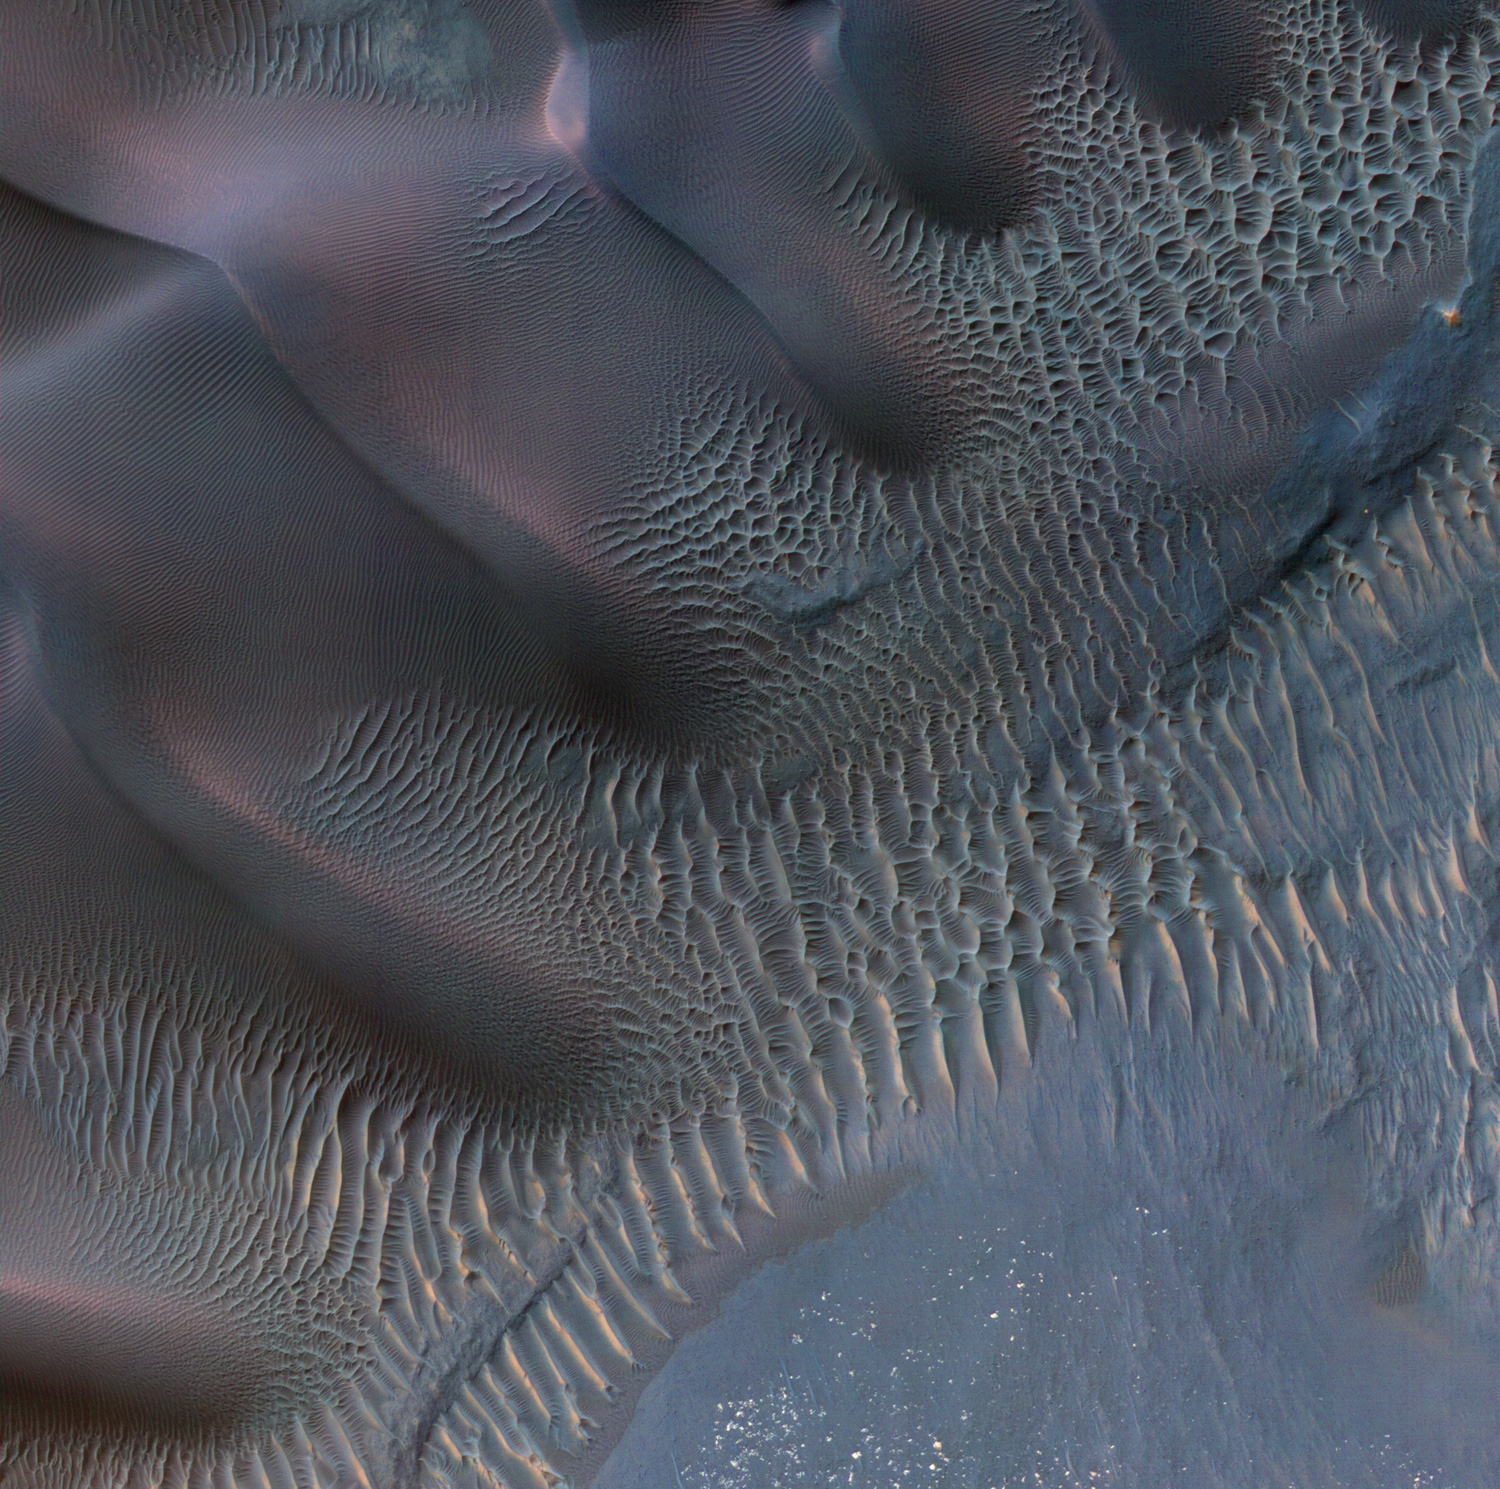 Aerial view of rippled, purple and blue sand dunes